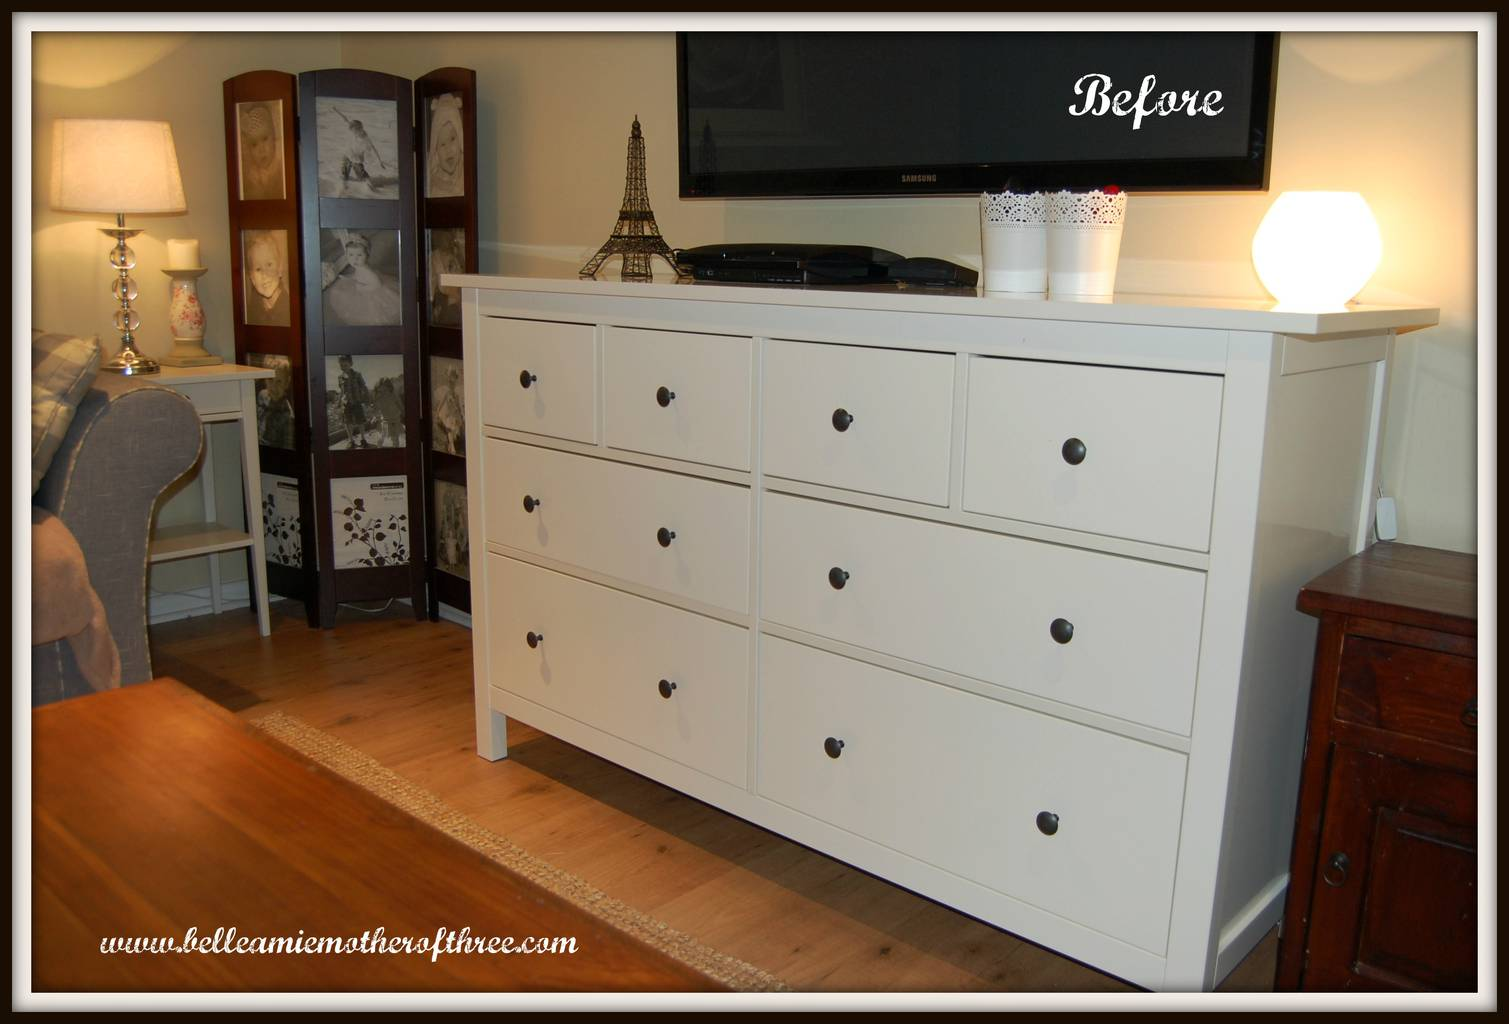 aspelund ikea chest of drawers. Black Bedroom Furniture Sets. Home Design Ideas